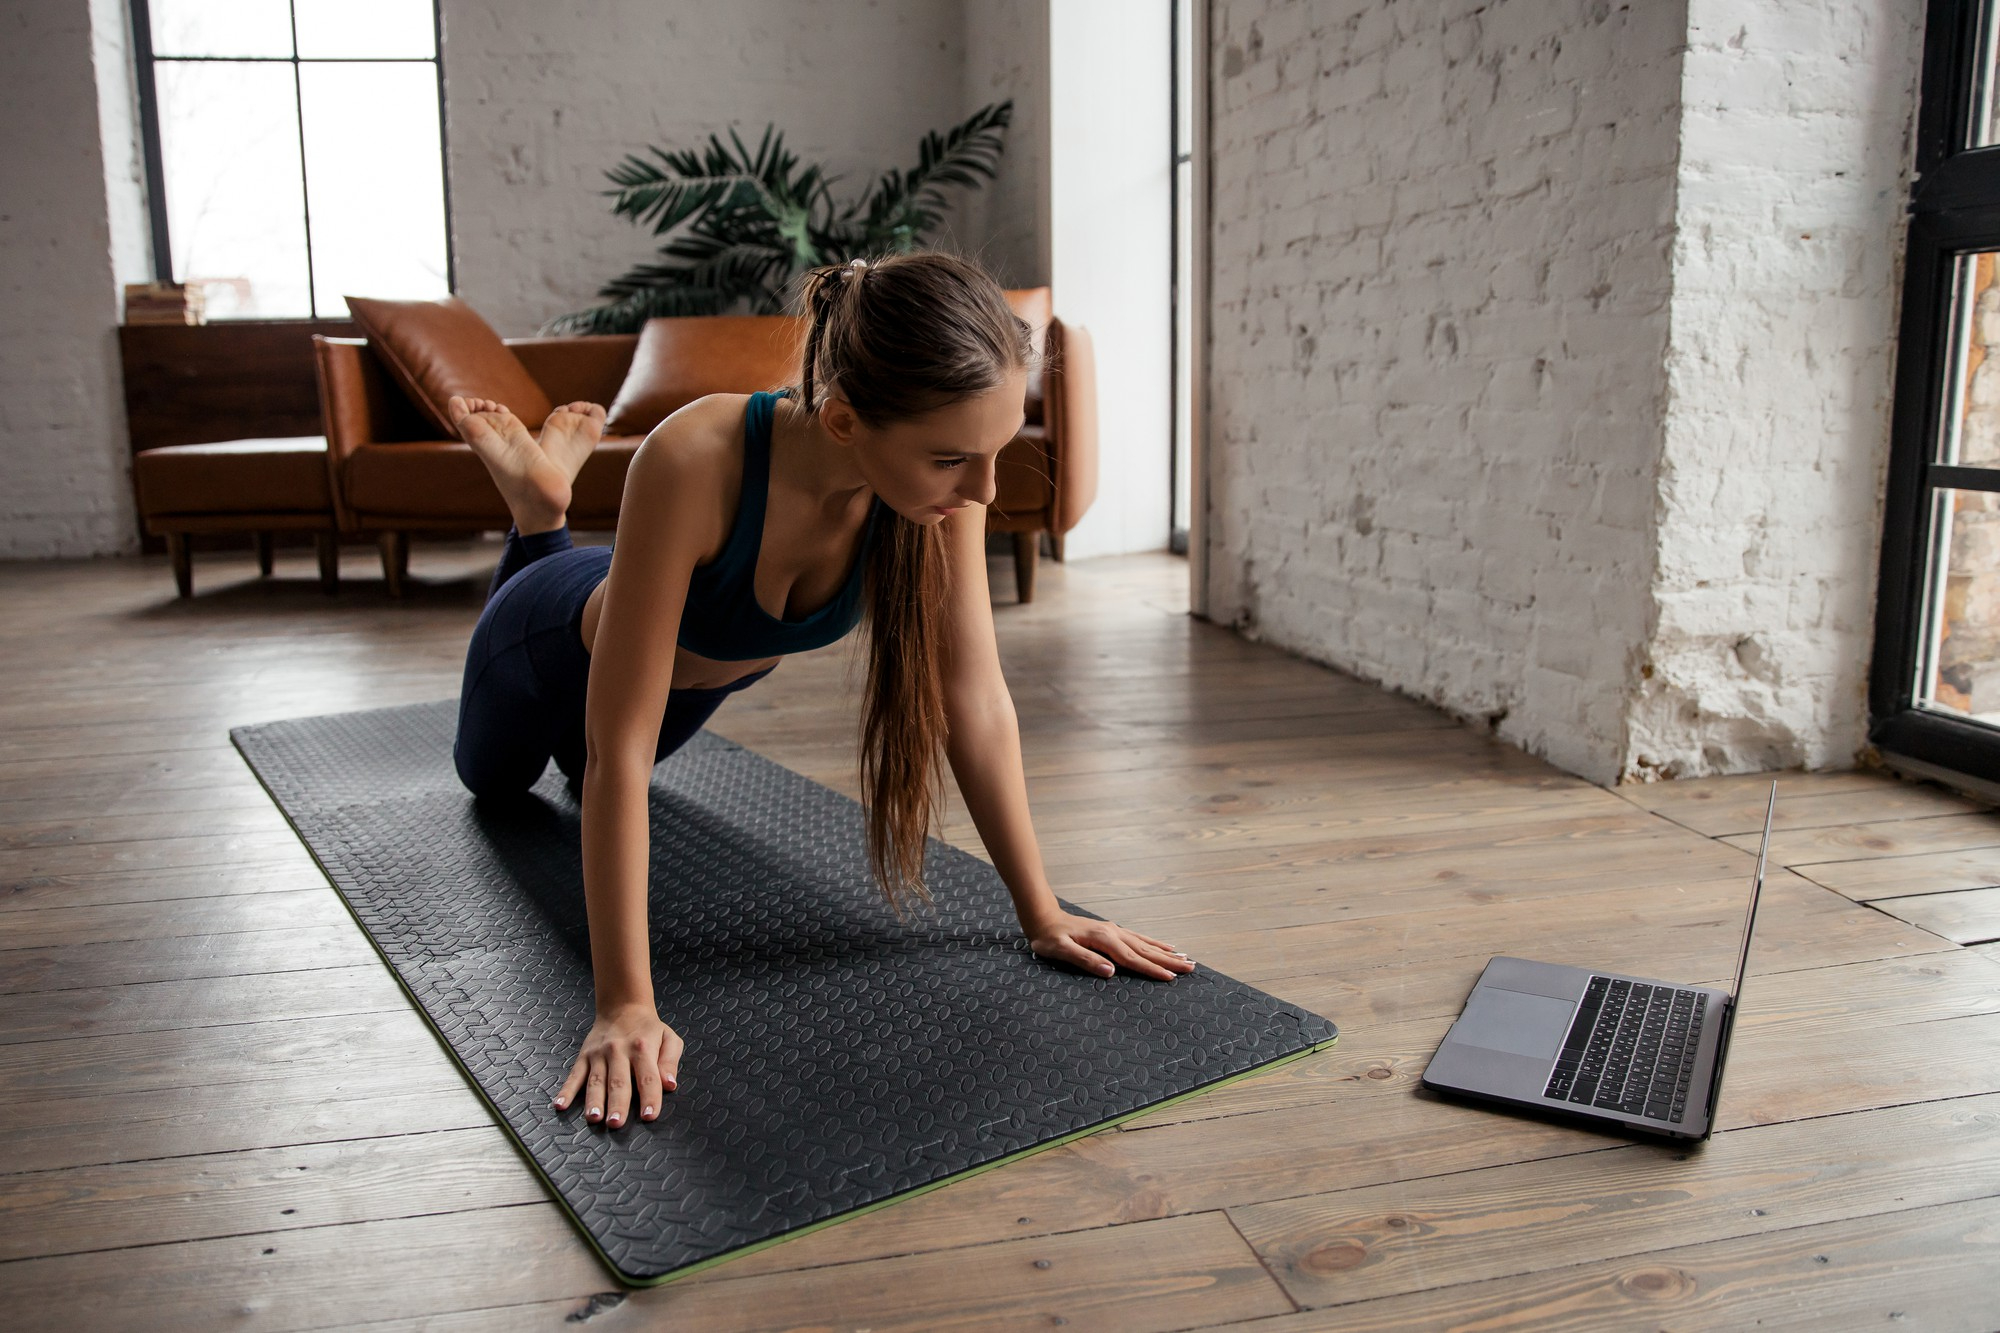 Women performing a yoga asana and live-streaming it through her laptop